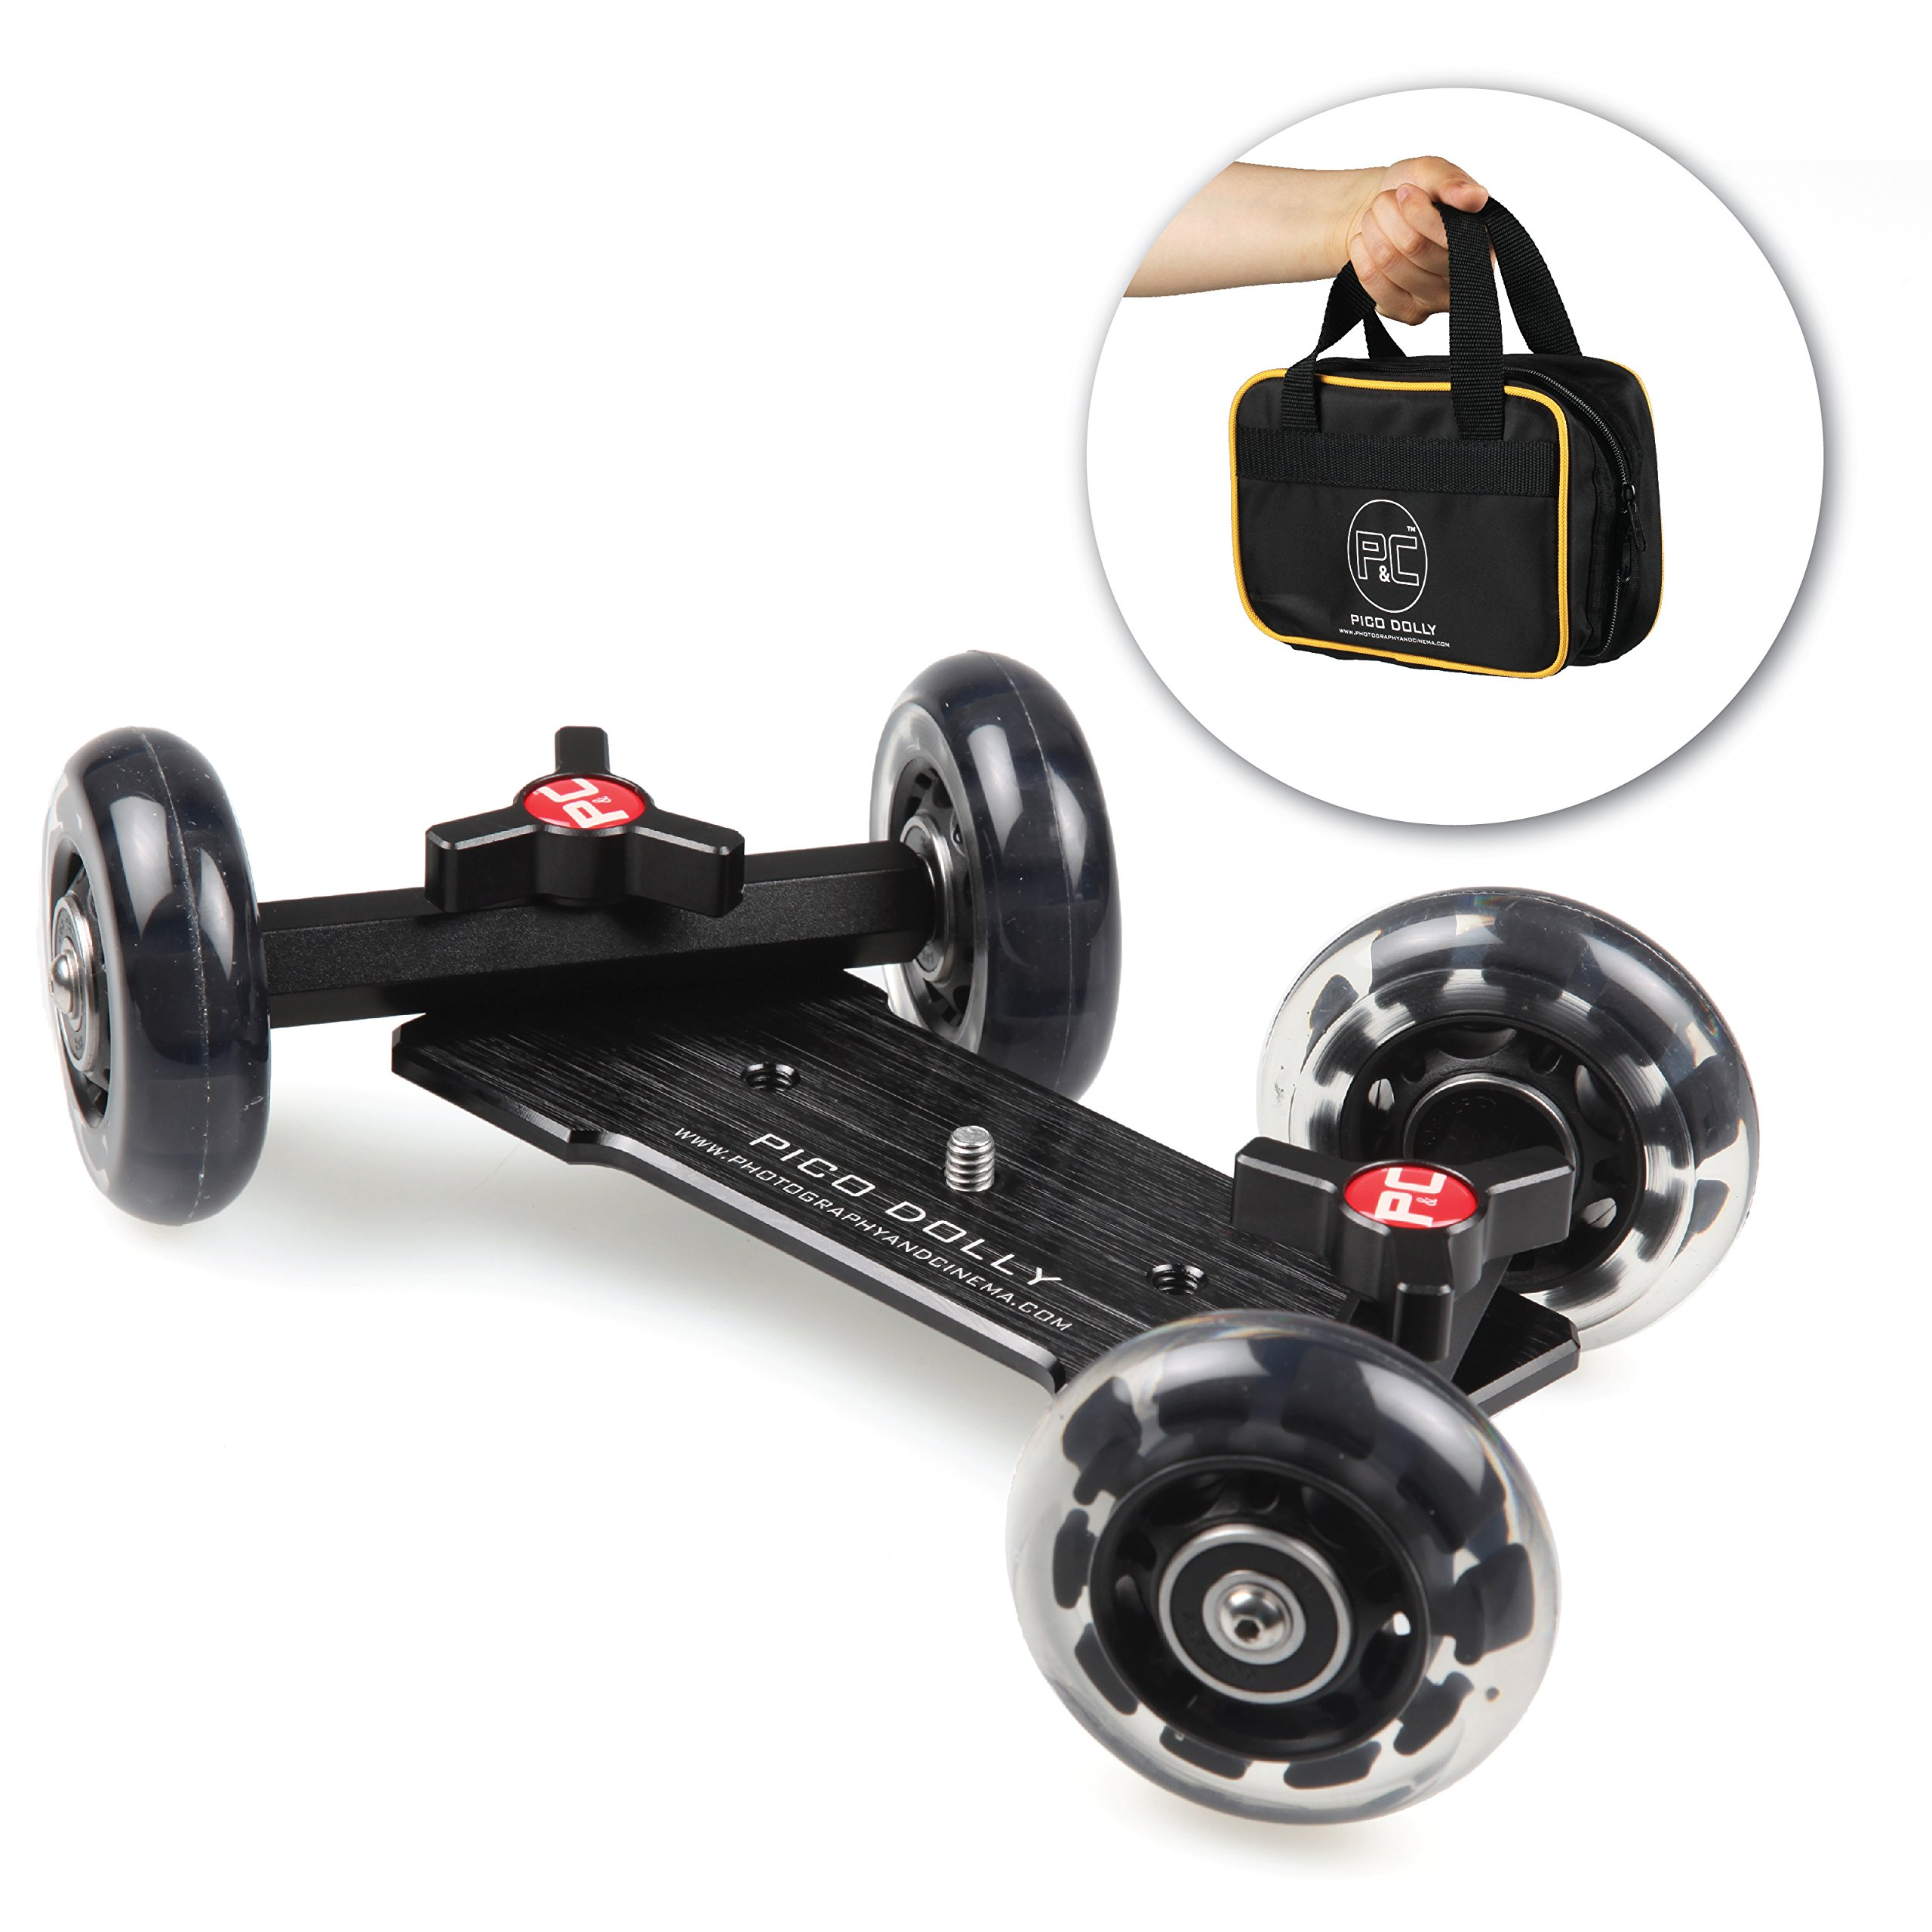 Pico Flex Dolly ONLY Digital Dslr Skater Camera Dolly Slider Table Top Dolly By Photosmart